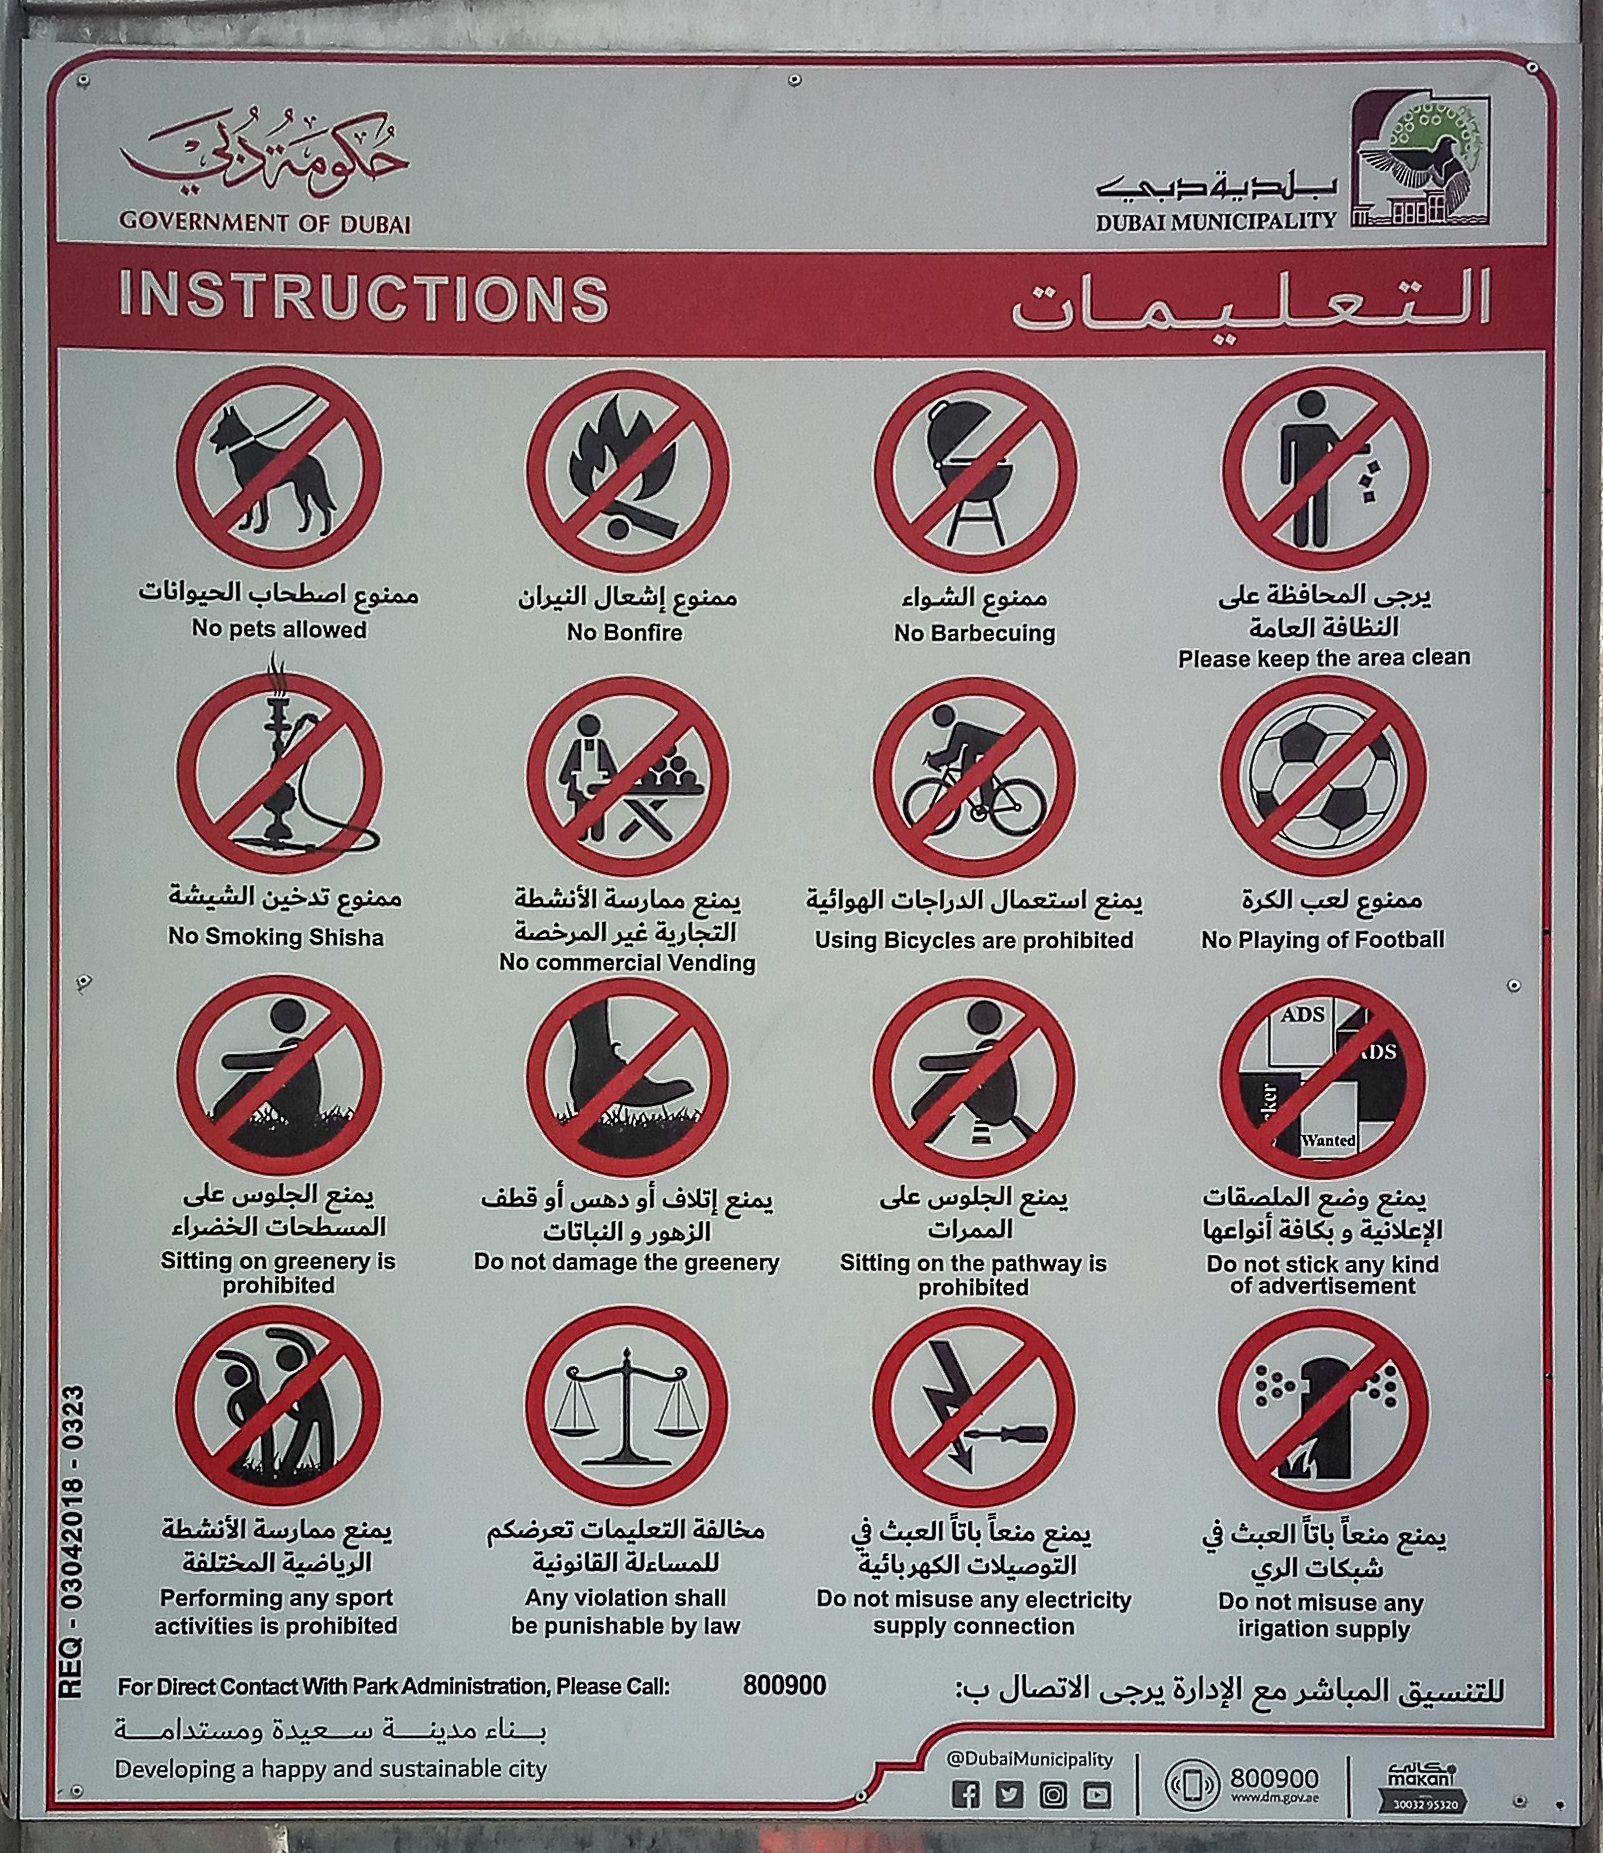 A common RULES sign for public places